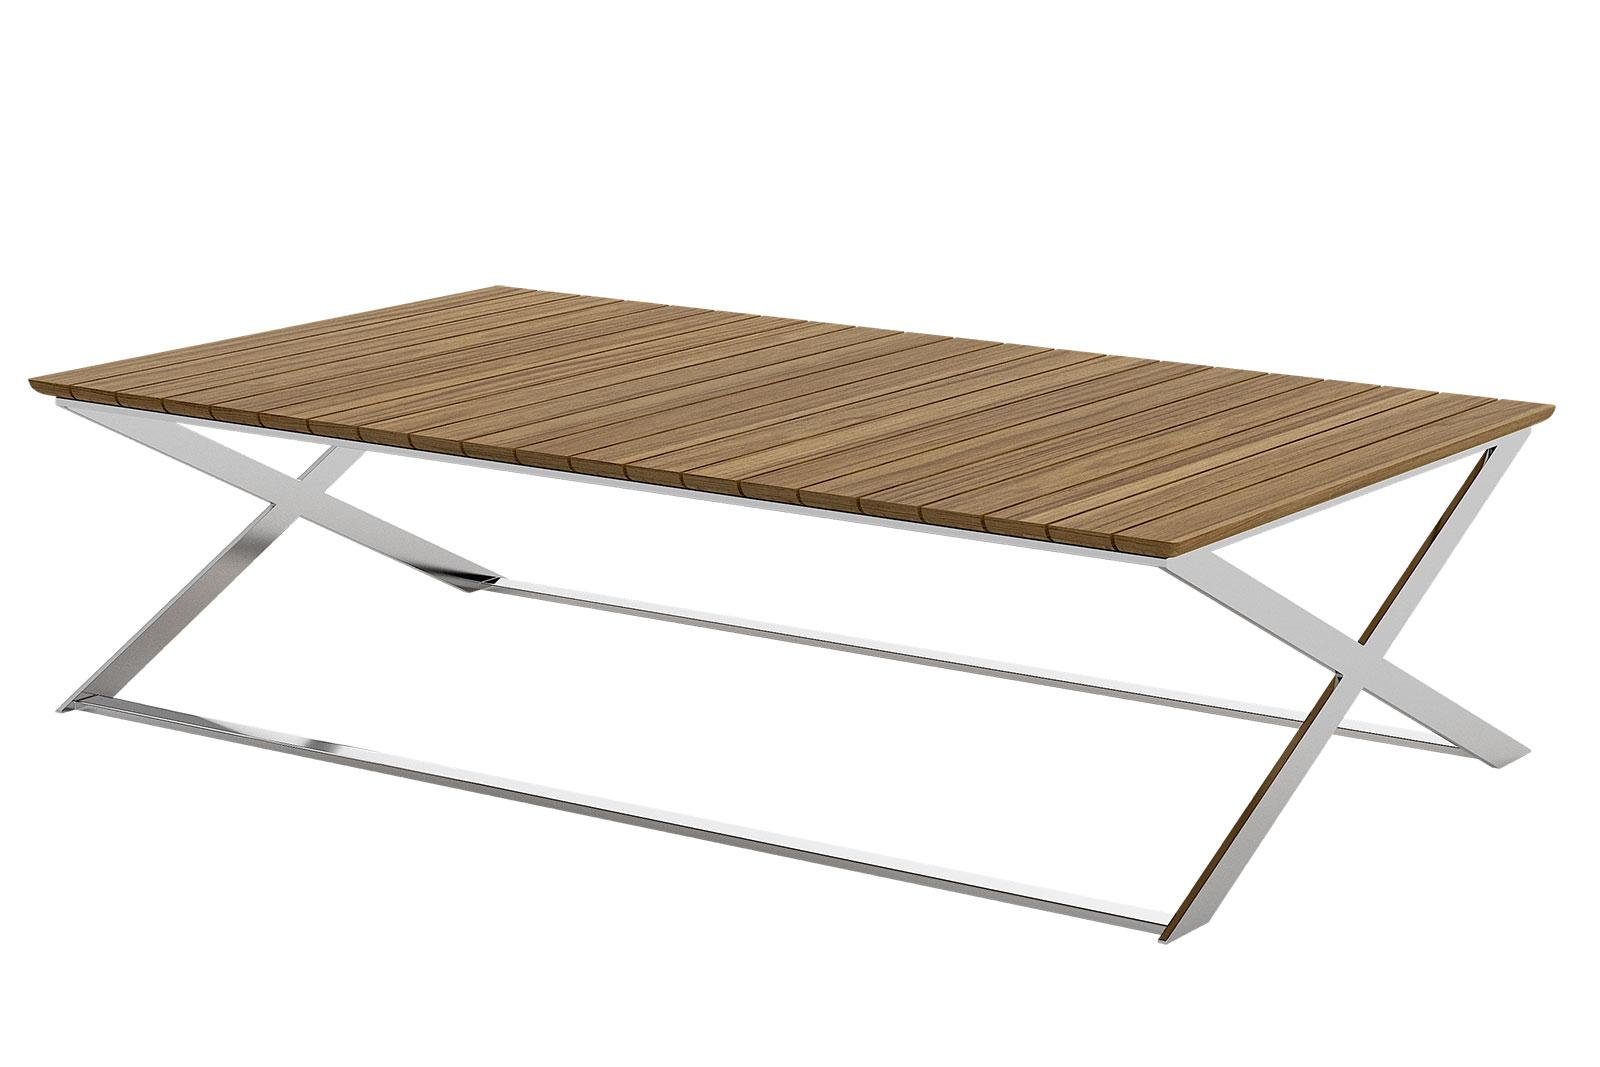 Table Basse De Jardin En Teck Vente En Ligne Italy Dream Design